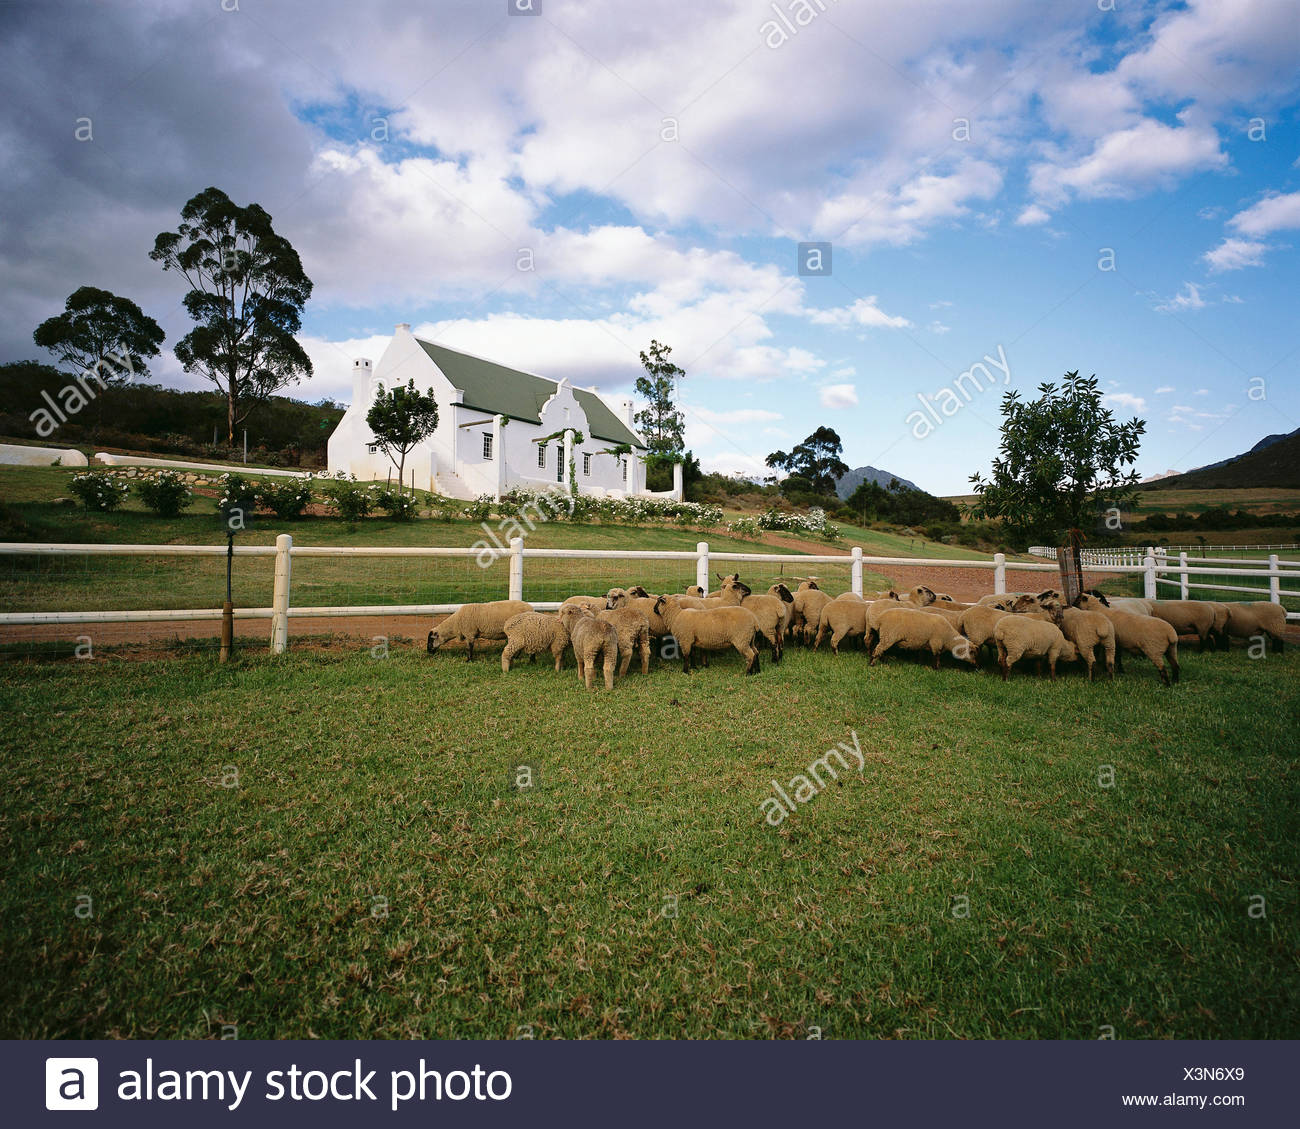 Sheep in Field Swellendam, Western Cape, South Africa - Stock Image